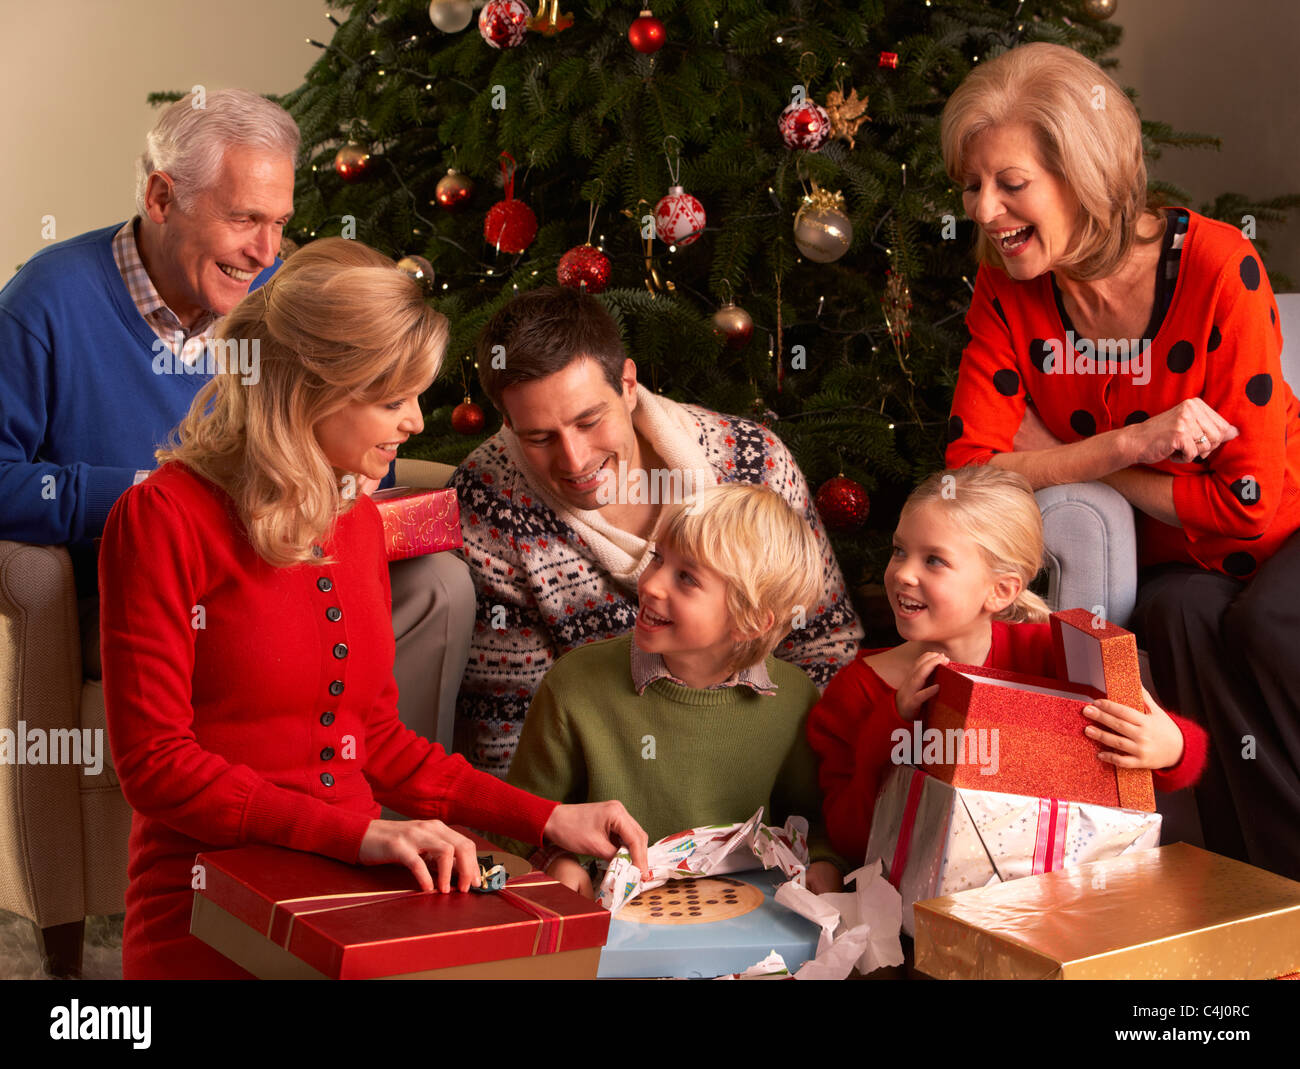 Three Generation Family Opening Christmas Gifts At Home Stock Photo ...